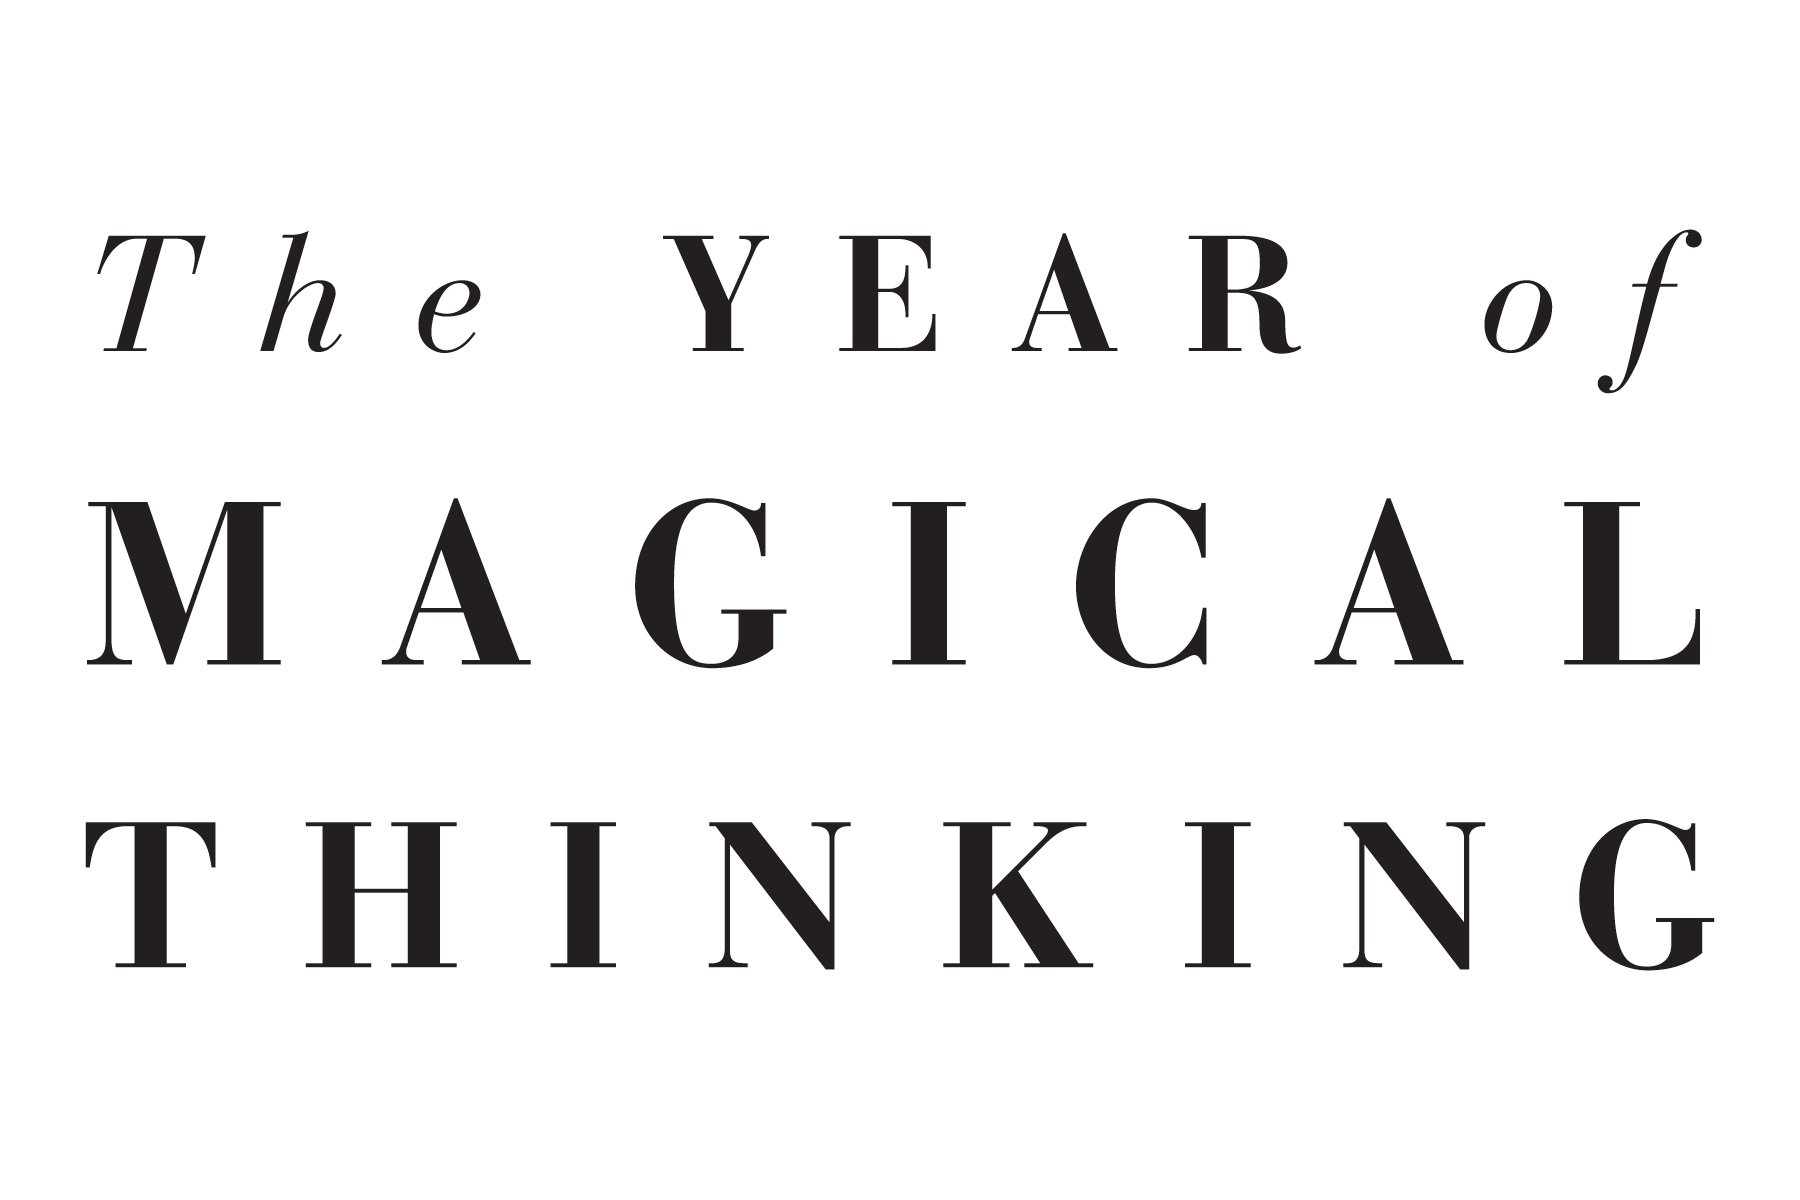 The Year of Magical Thinking Title Treatment